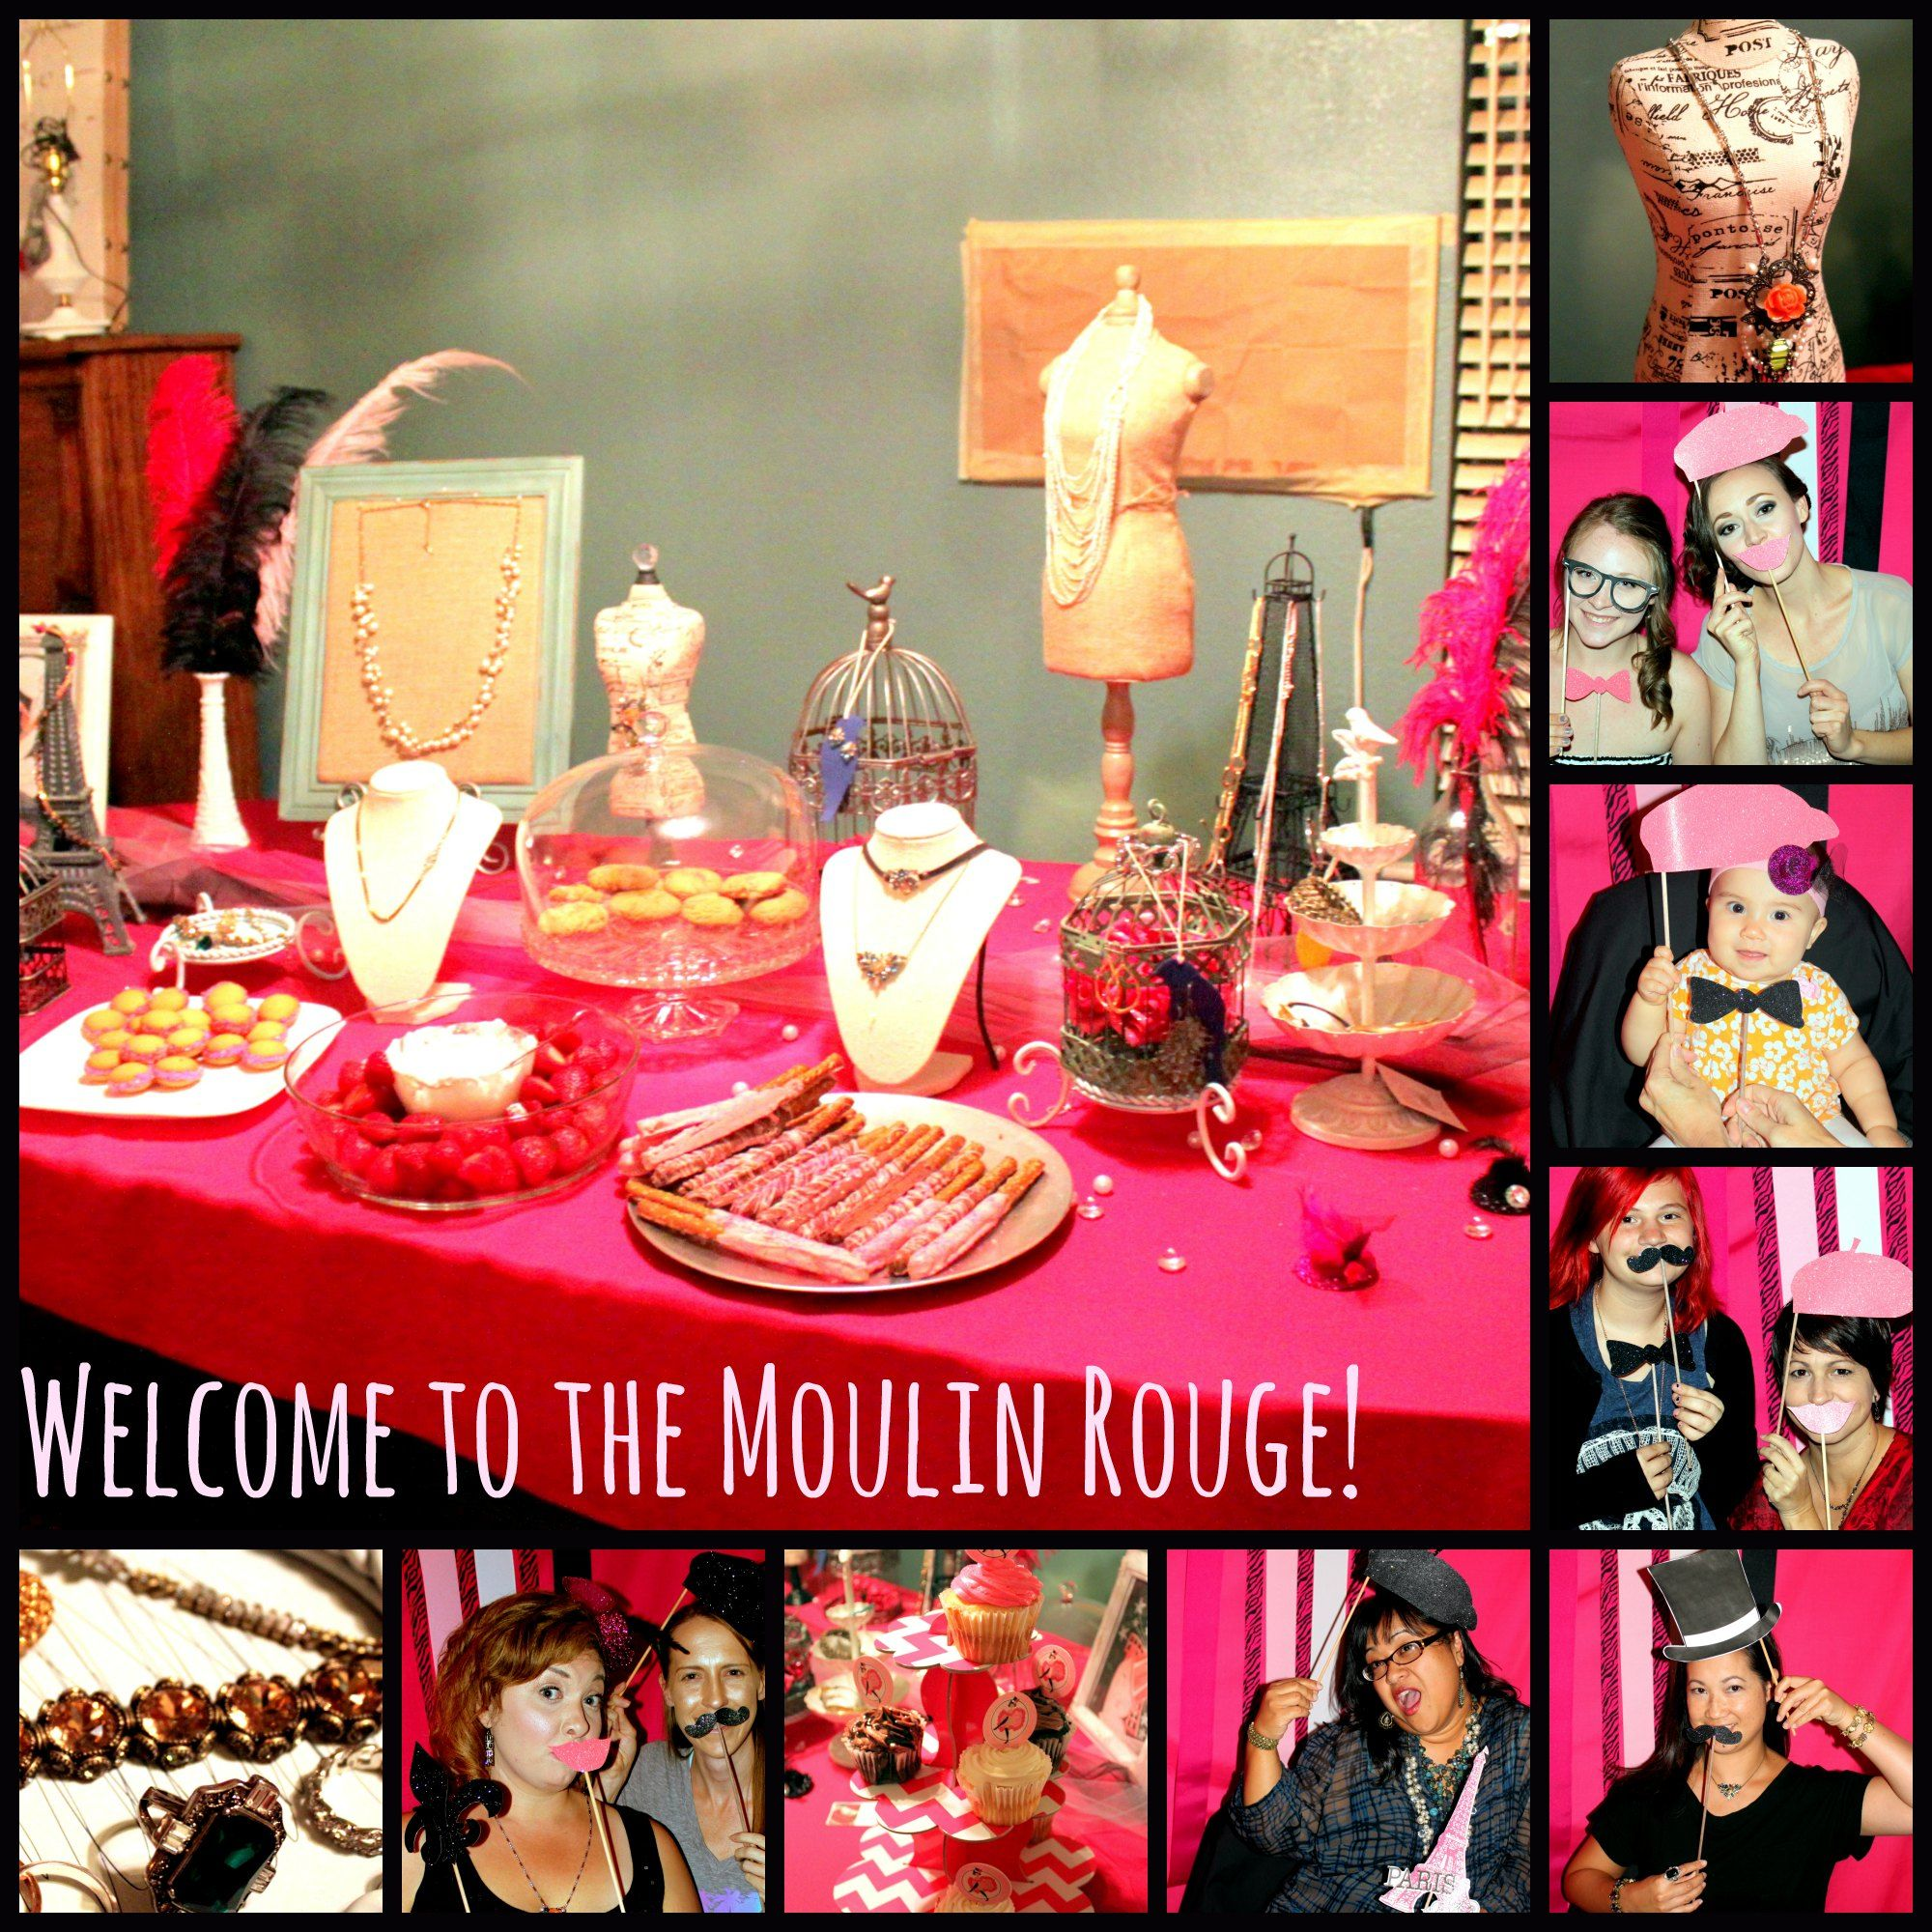 Moulin rouge party moulin rouge party pinterest - Tons Of Great Moulin Rouge Party Ideas